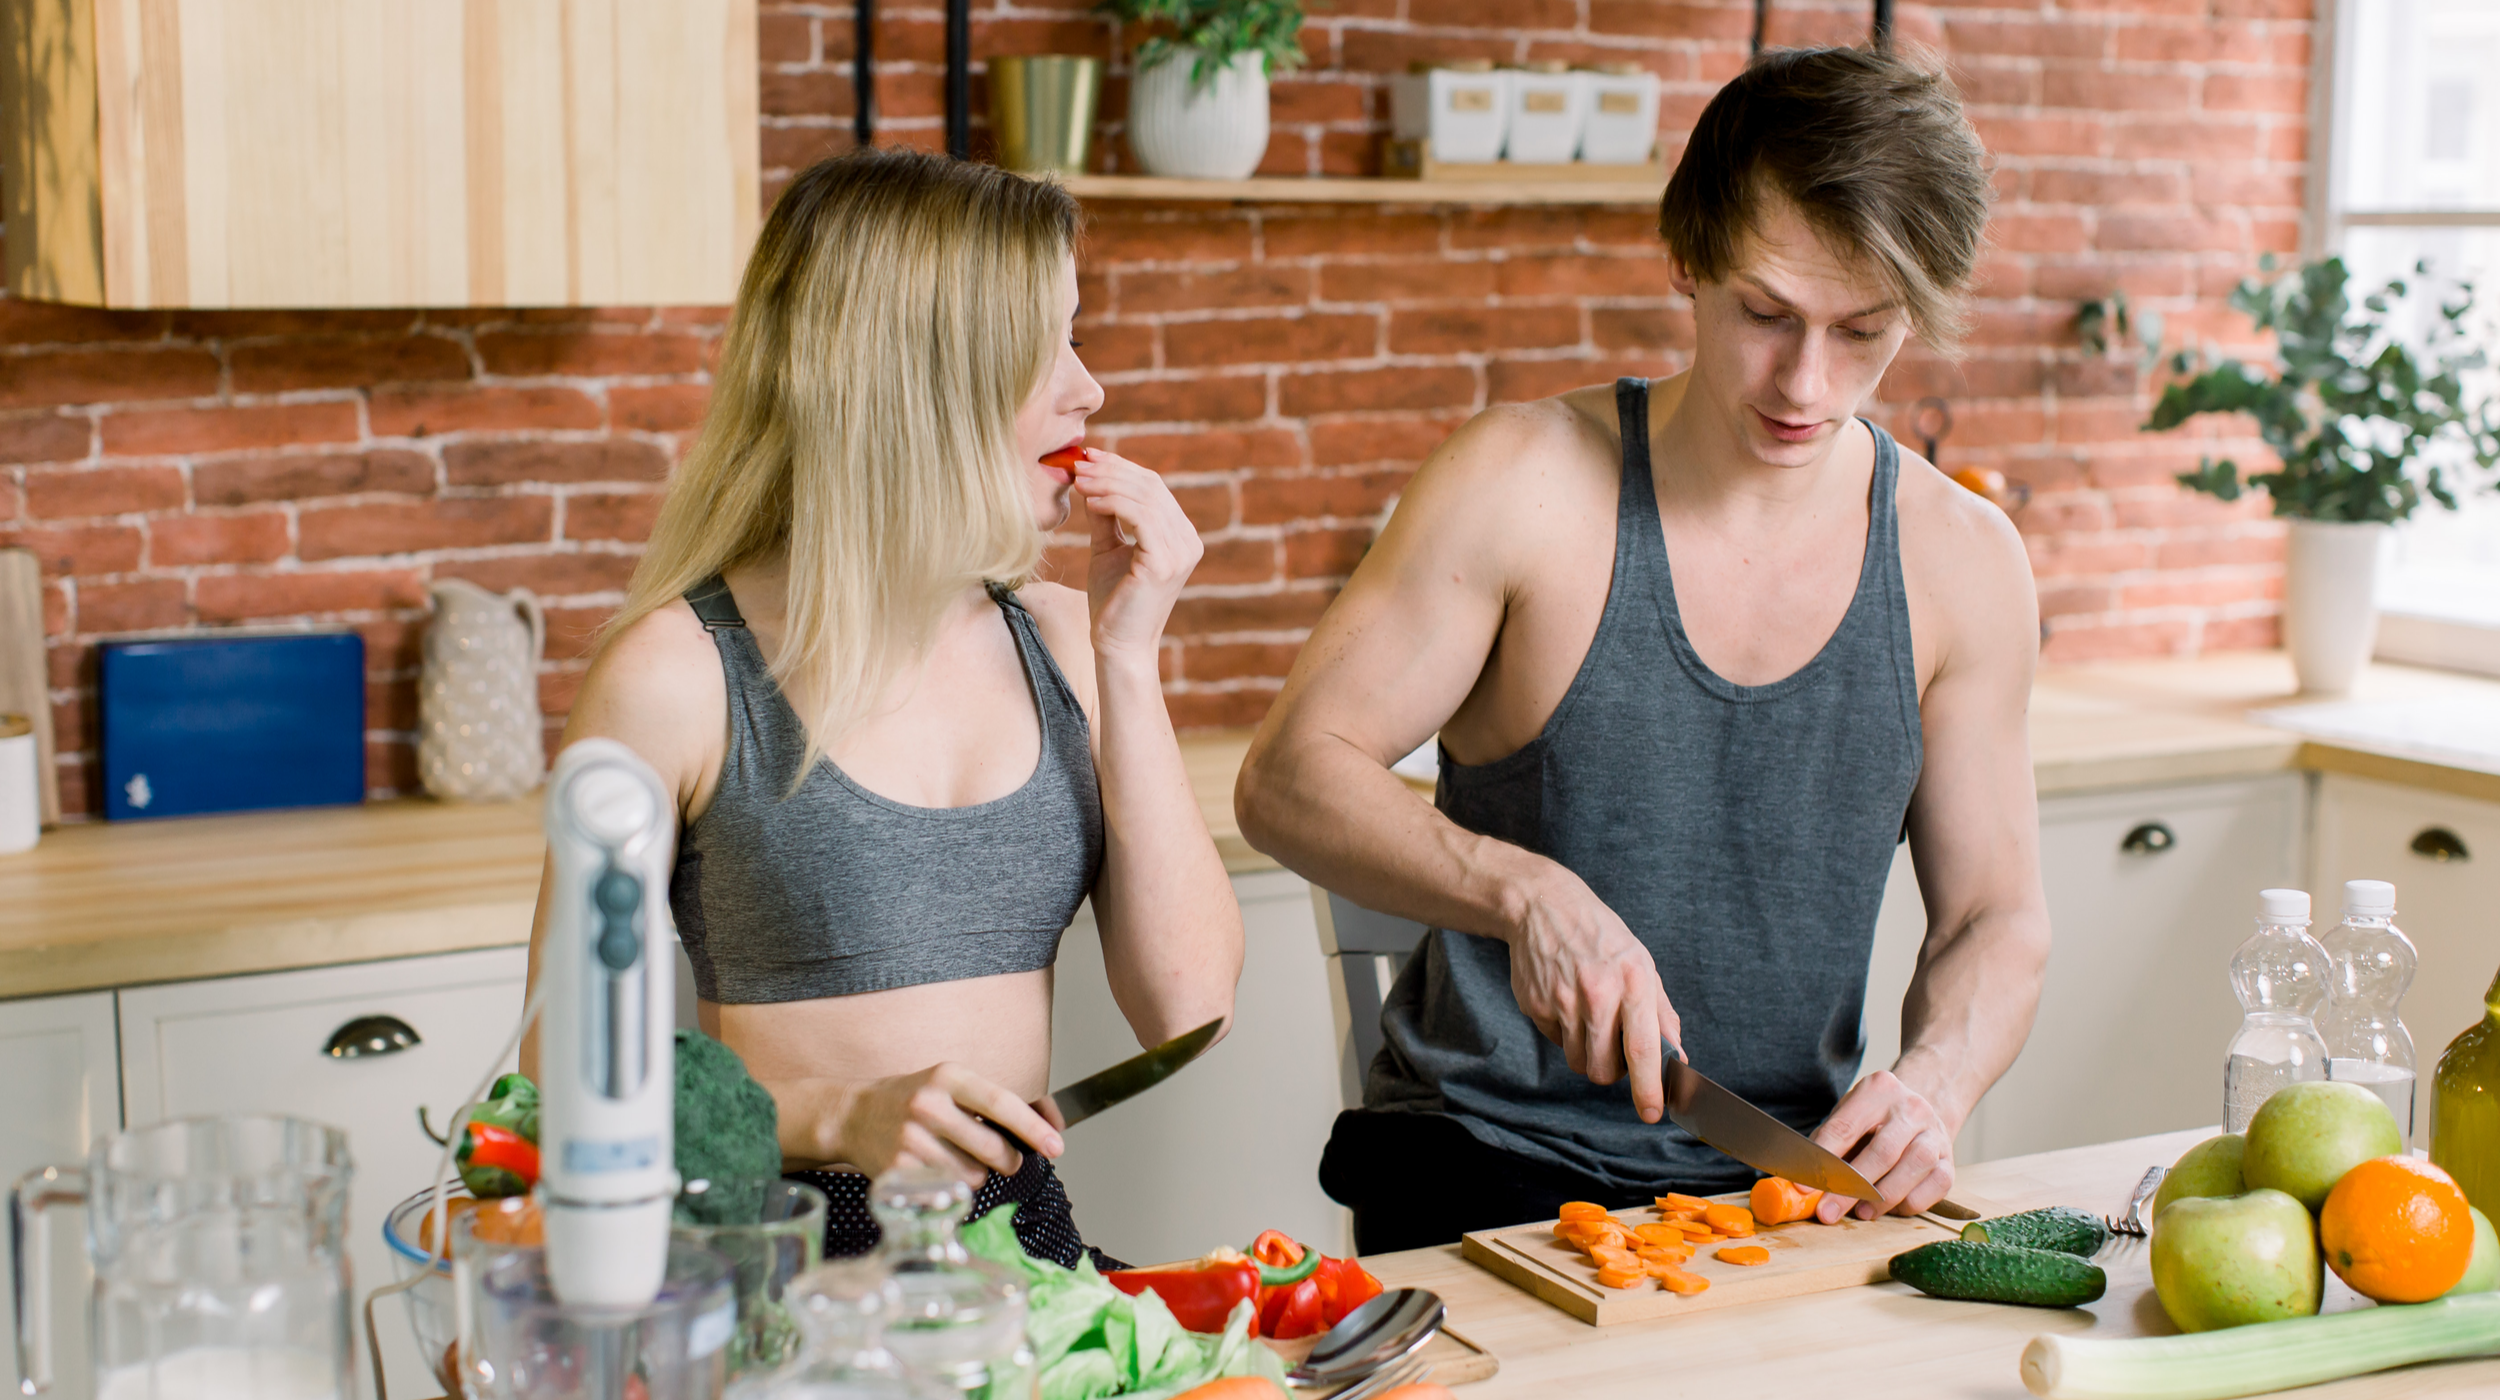 Step by Step Plan to Move Into Intuitive Eating